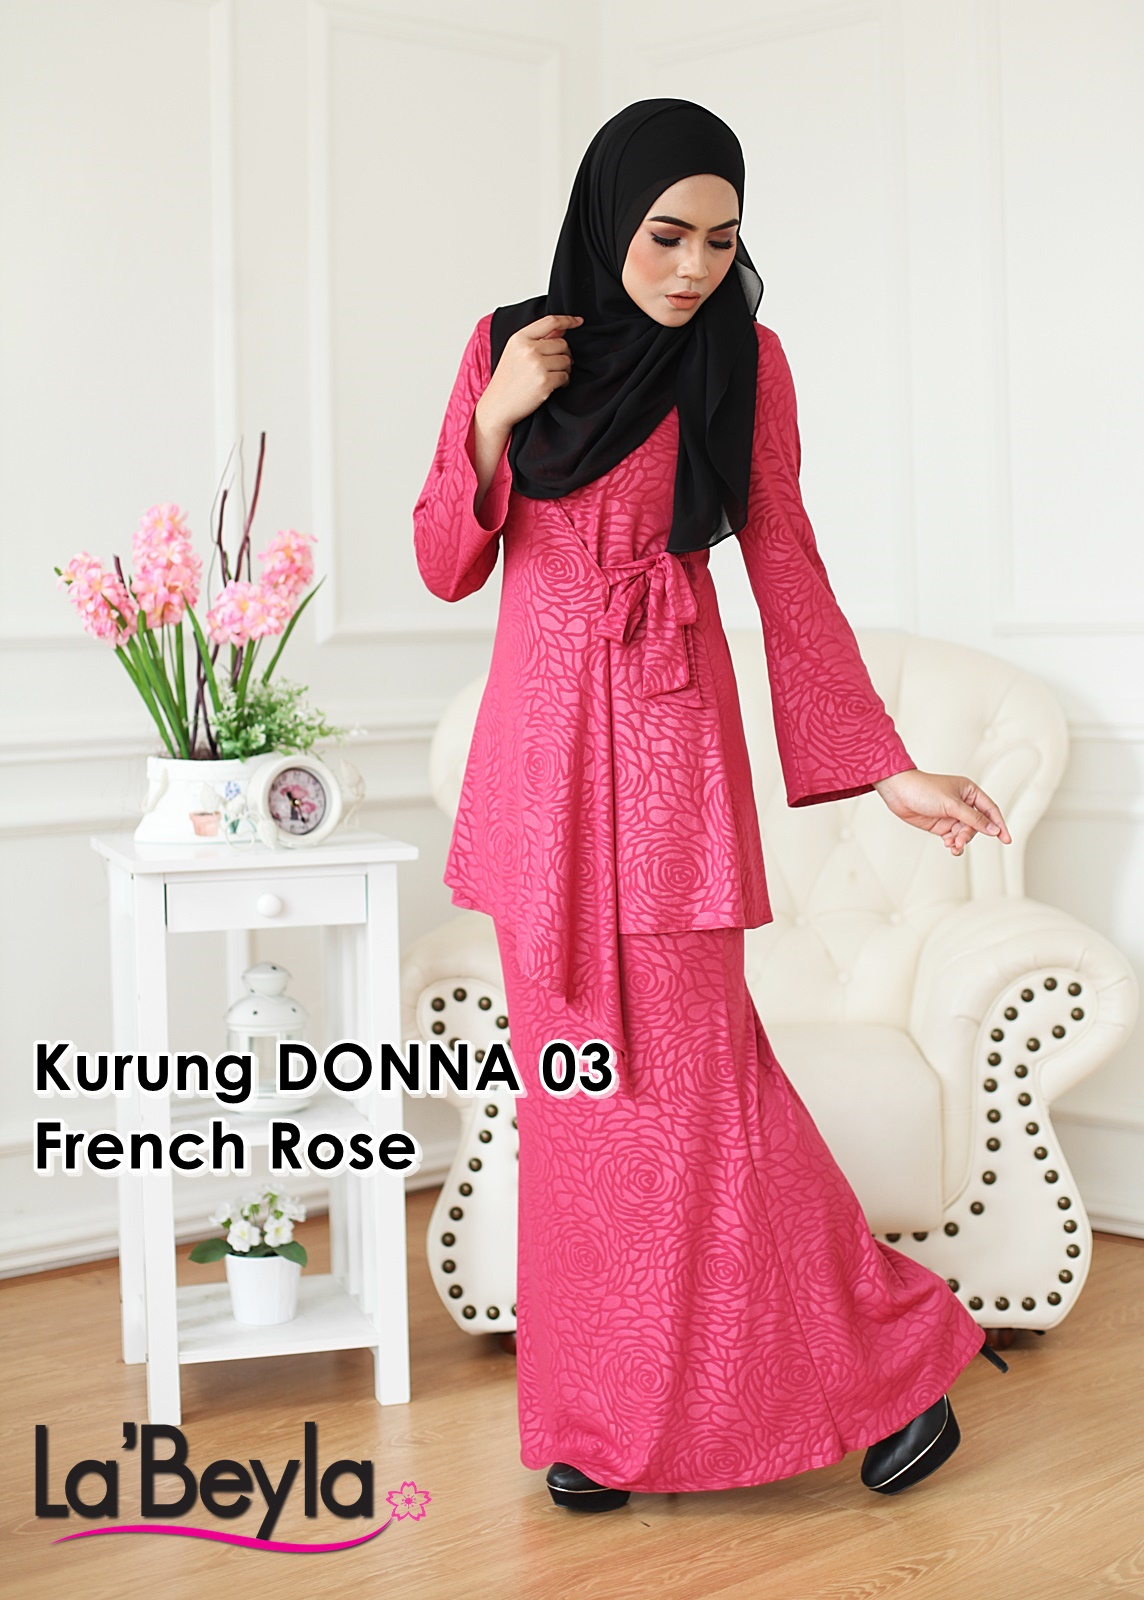 Kurung Donna 03 - French Rose